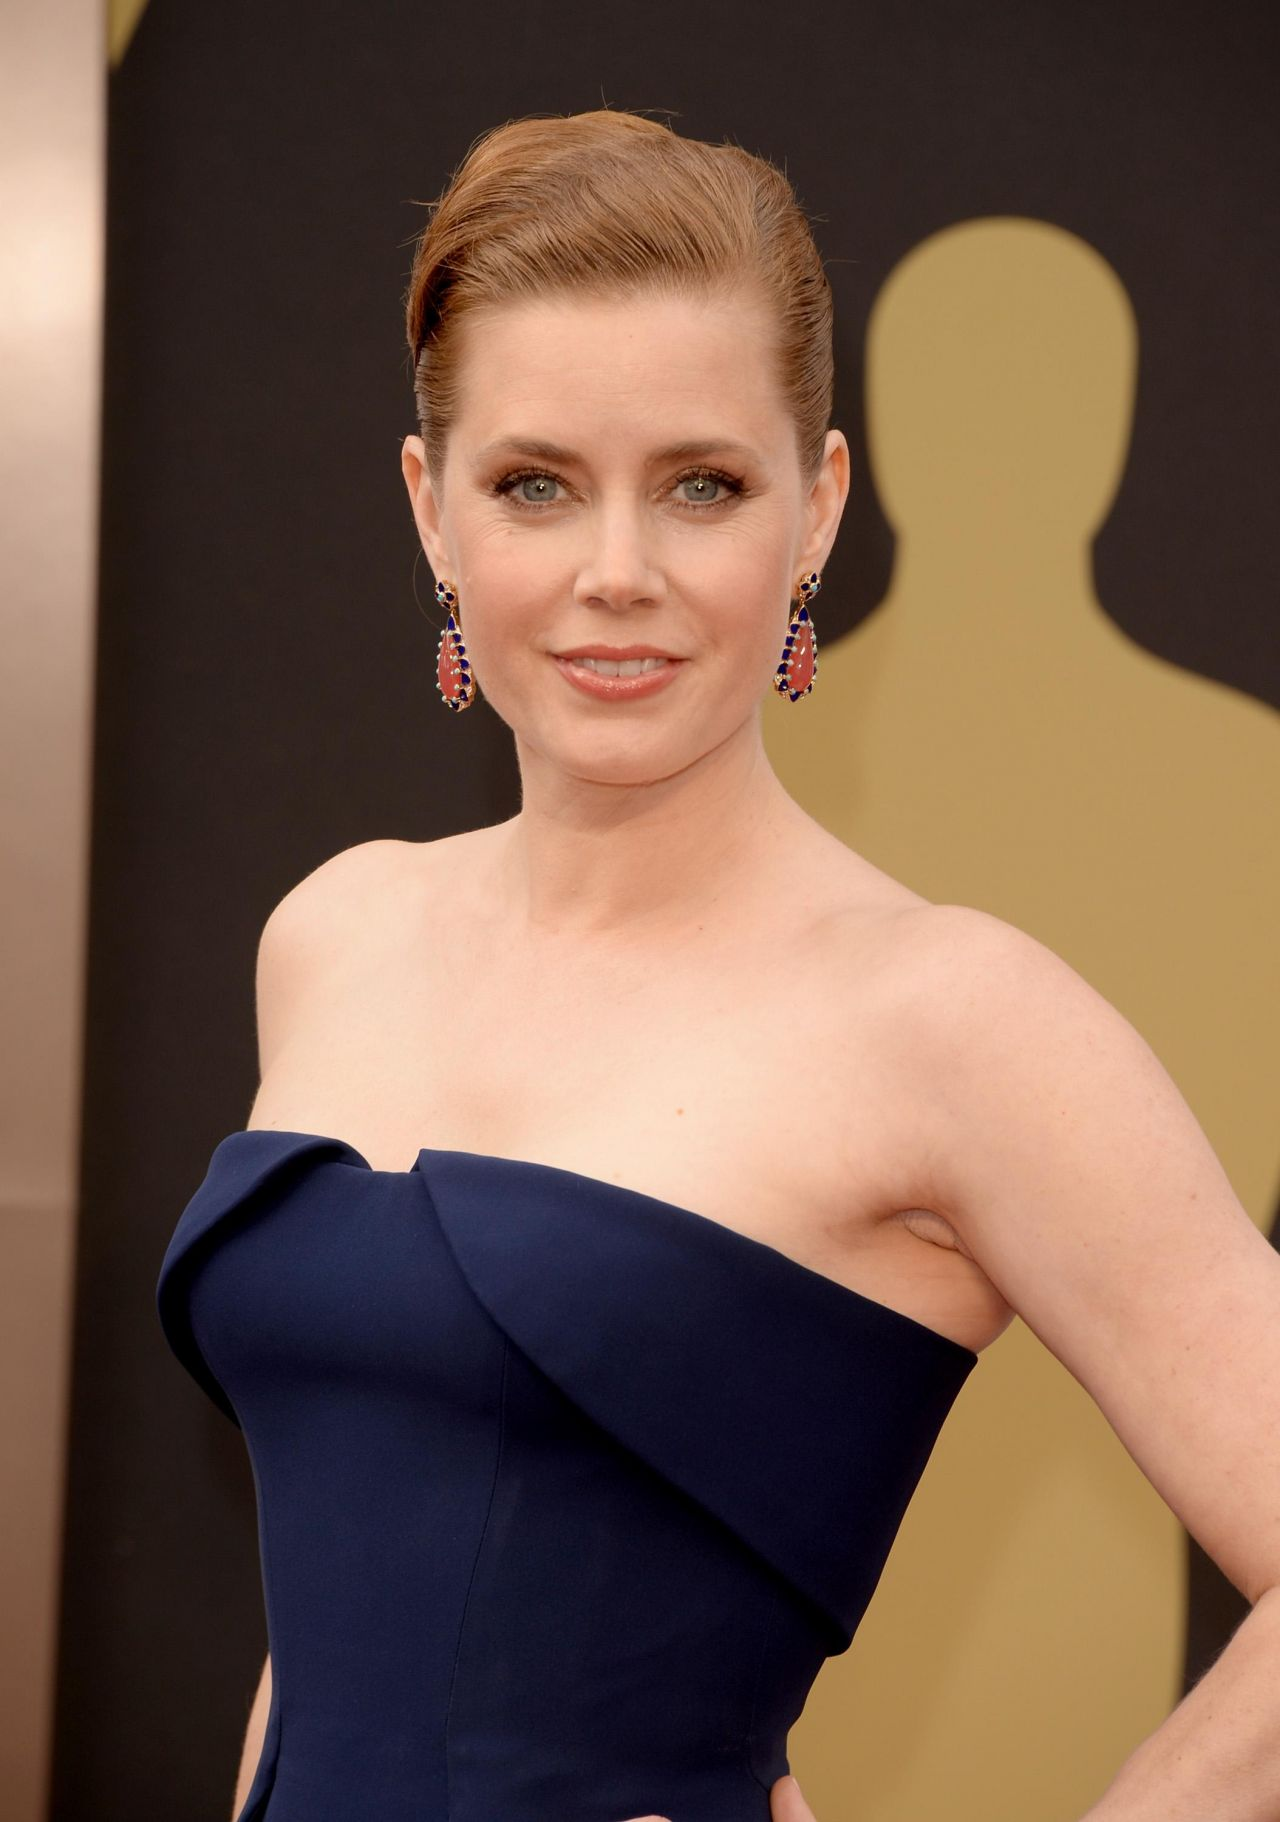 Amy Adams in Gucci with Tiffany & Co. jewels at 2014 Oscars